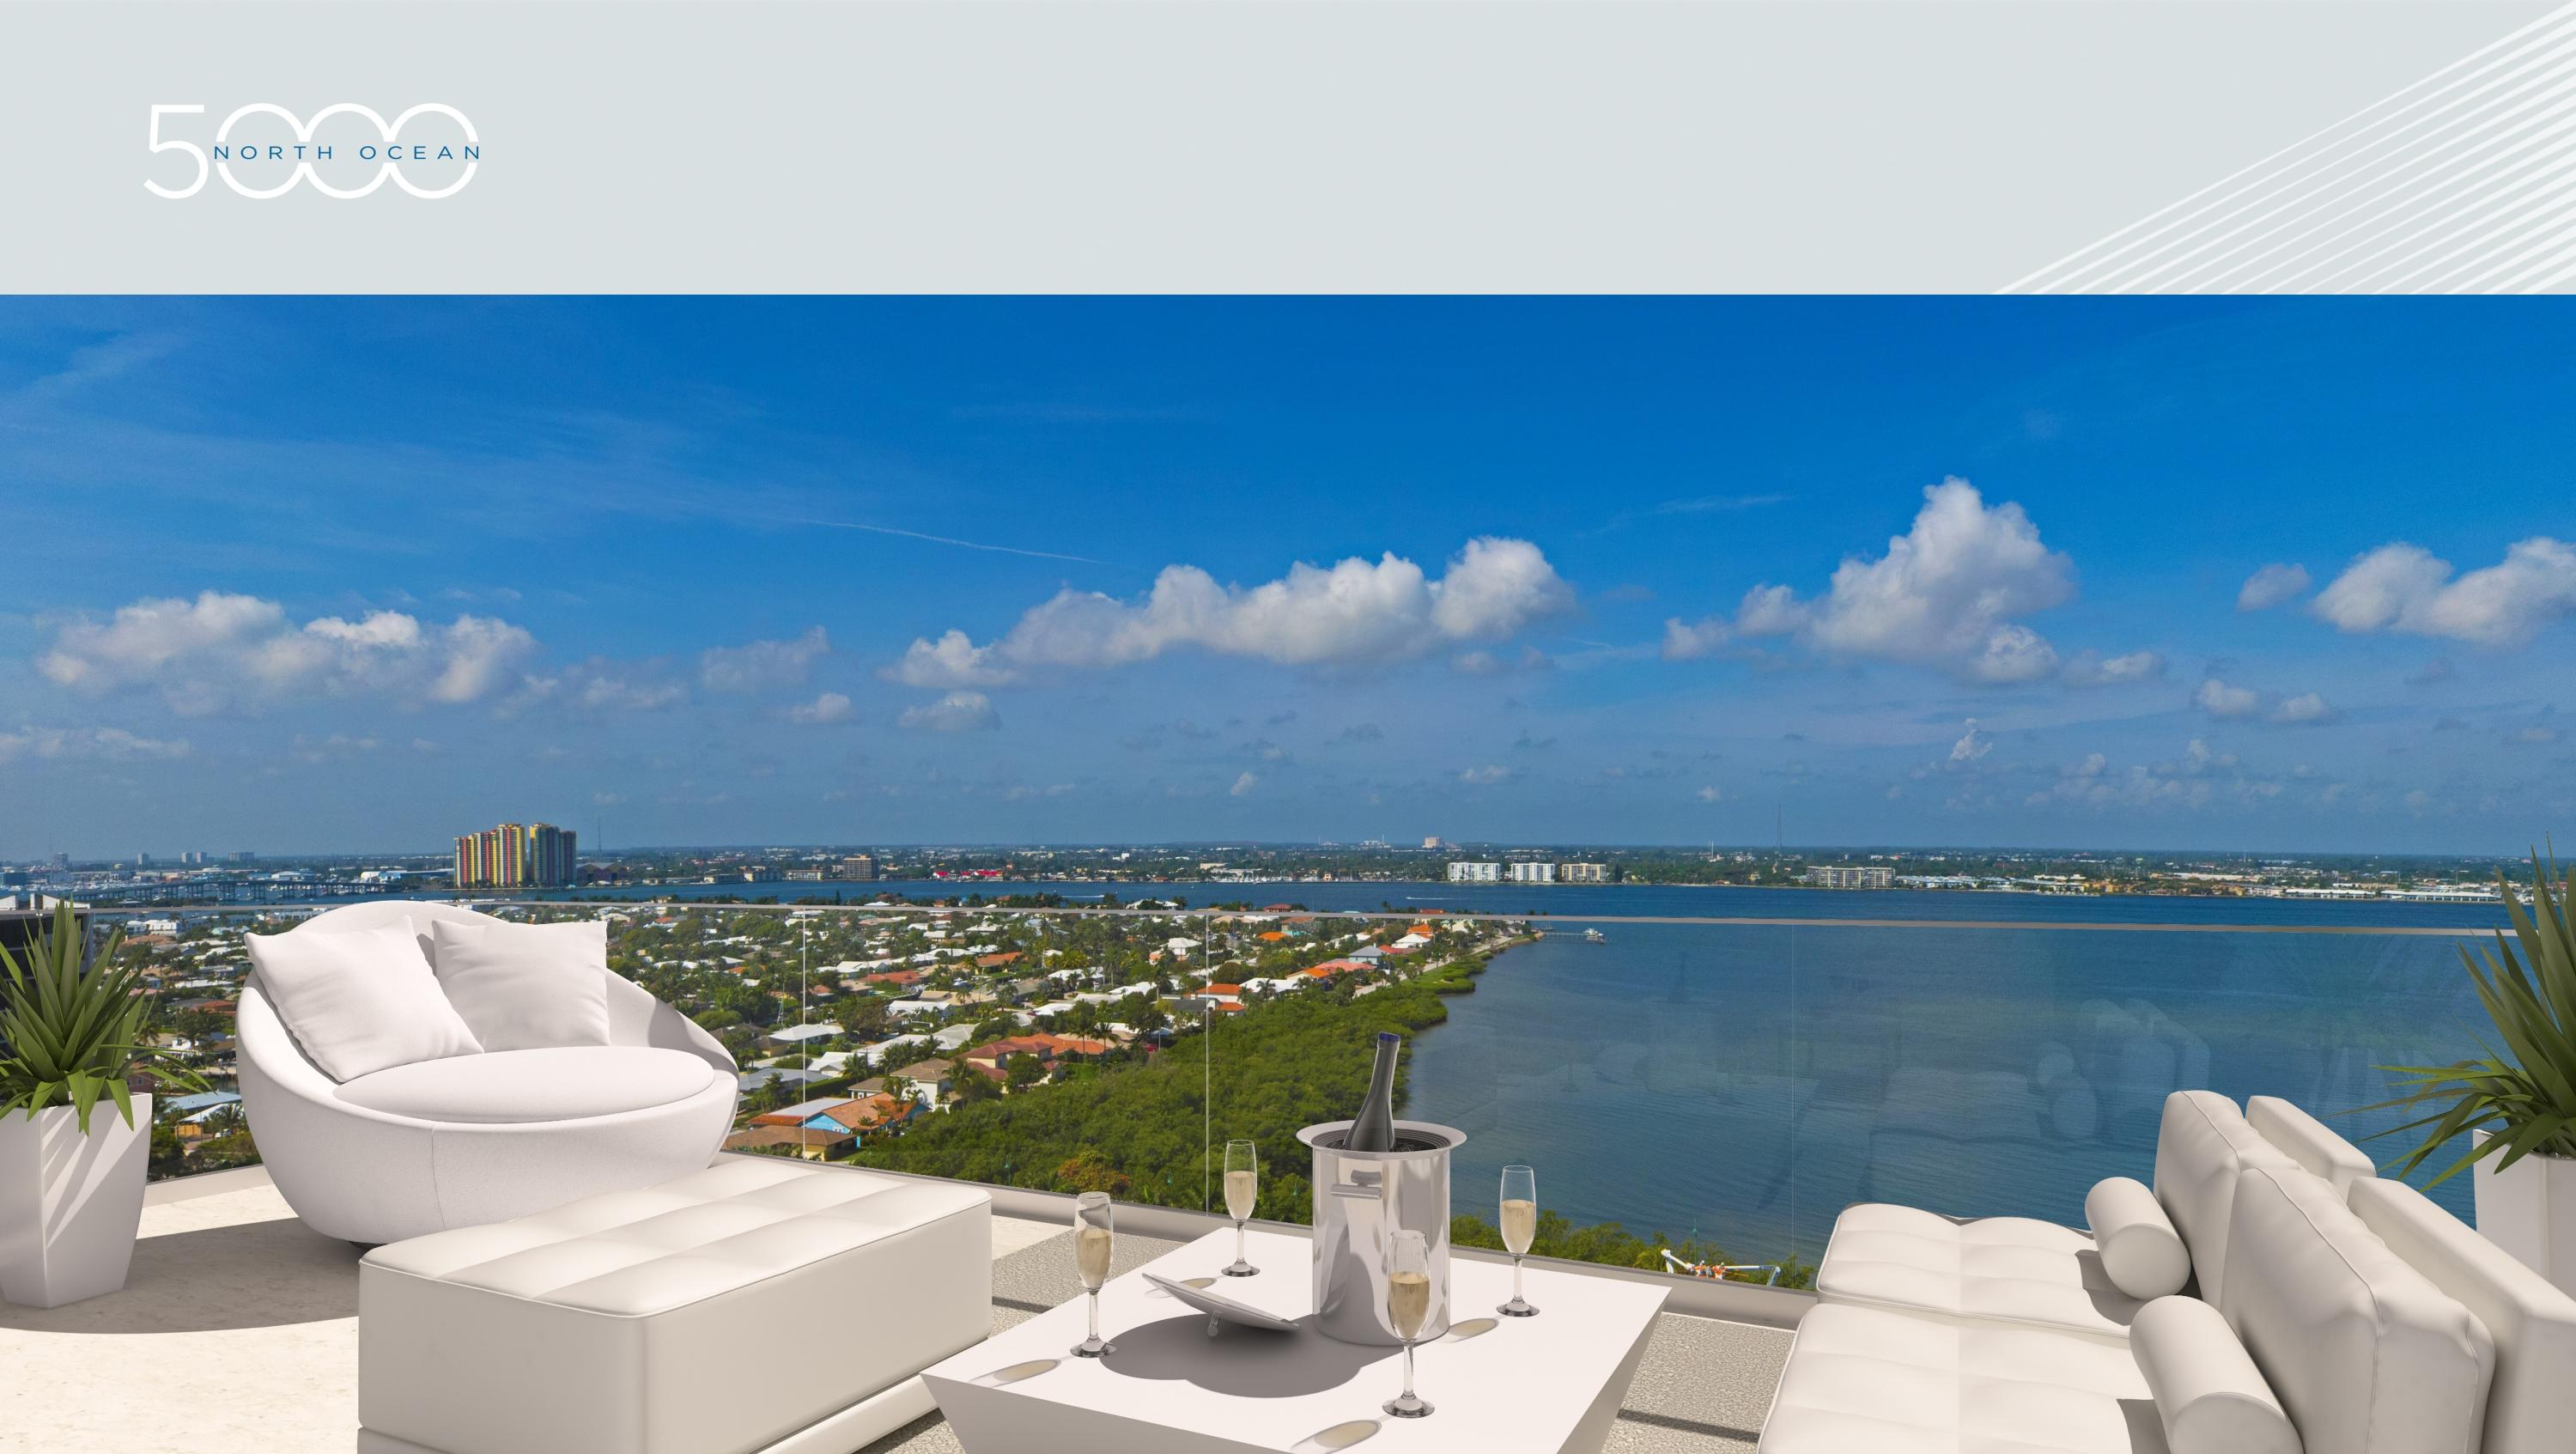 Photo of 5000 N Ocean Drive #Penthouse North, Singer Island, FL 33404